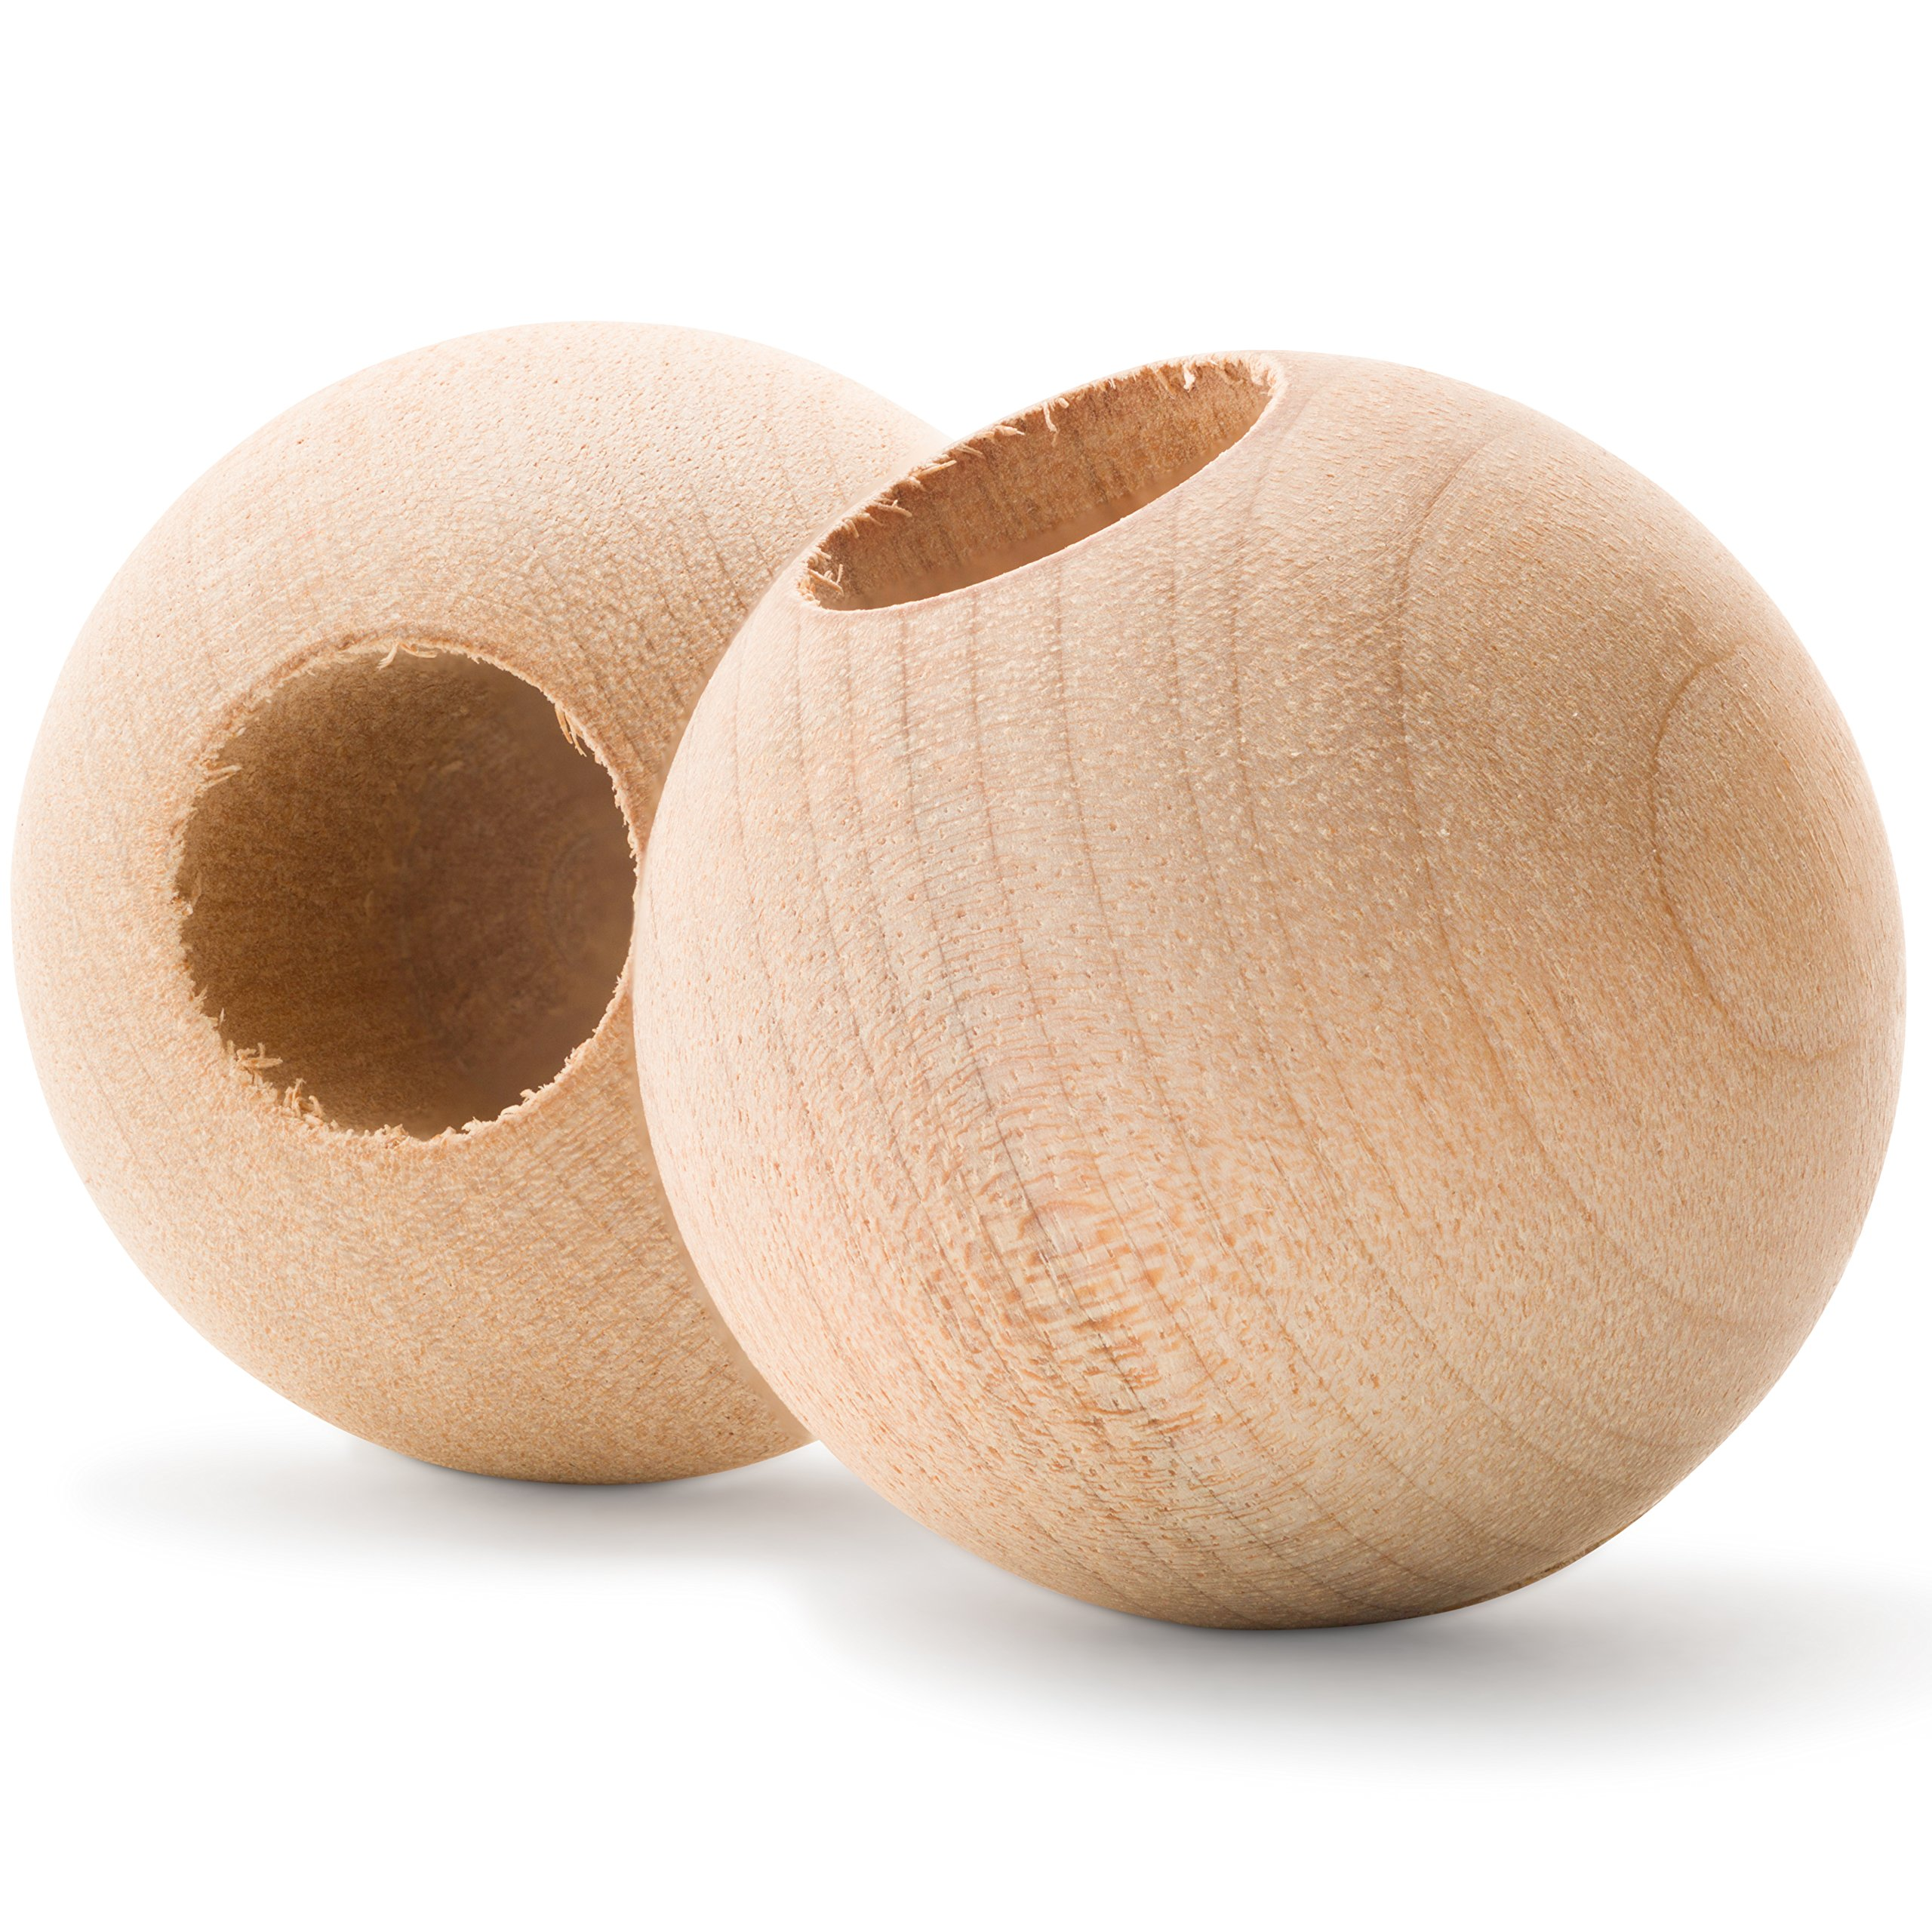 Wood Dowel Caps - 1'' Diameter With 3/8'' hole - Dowel Rod Caps For 3/8 Inch Dowel Rods - For Crafts and DIY'ers - Pack of 250 - Woodpeckers Crafts